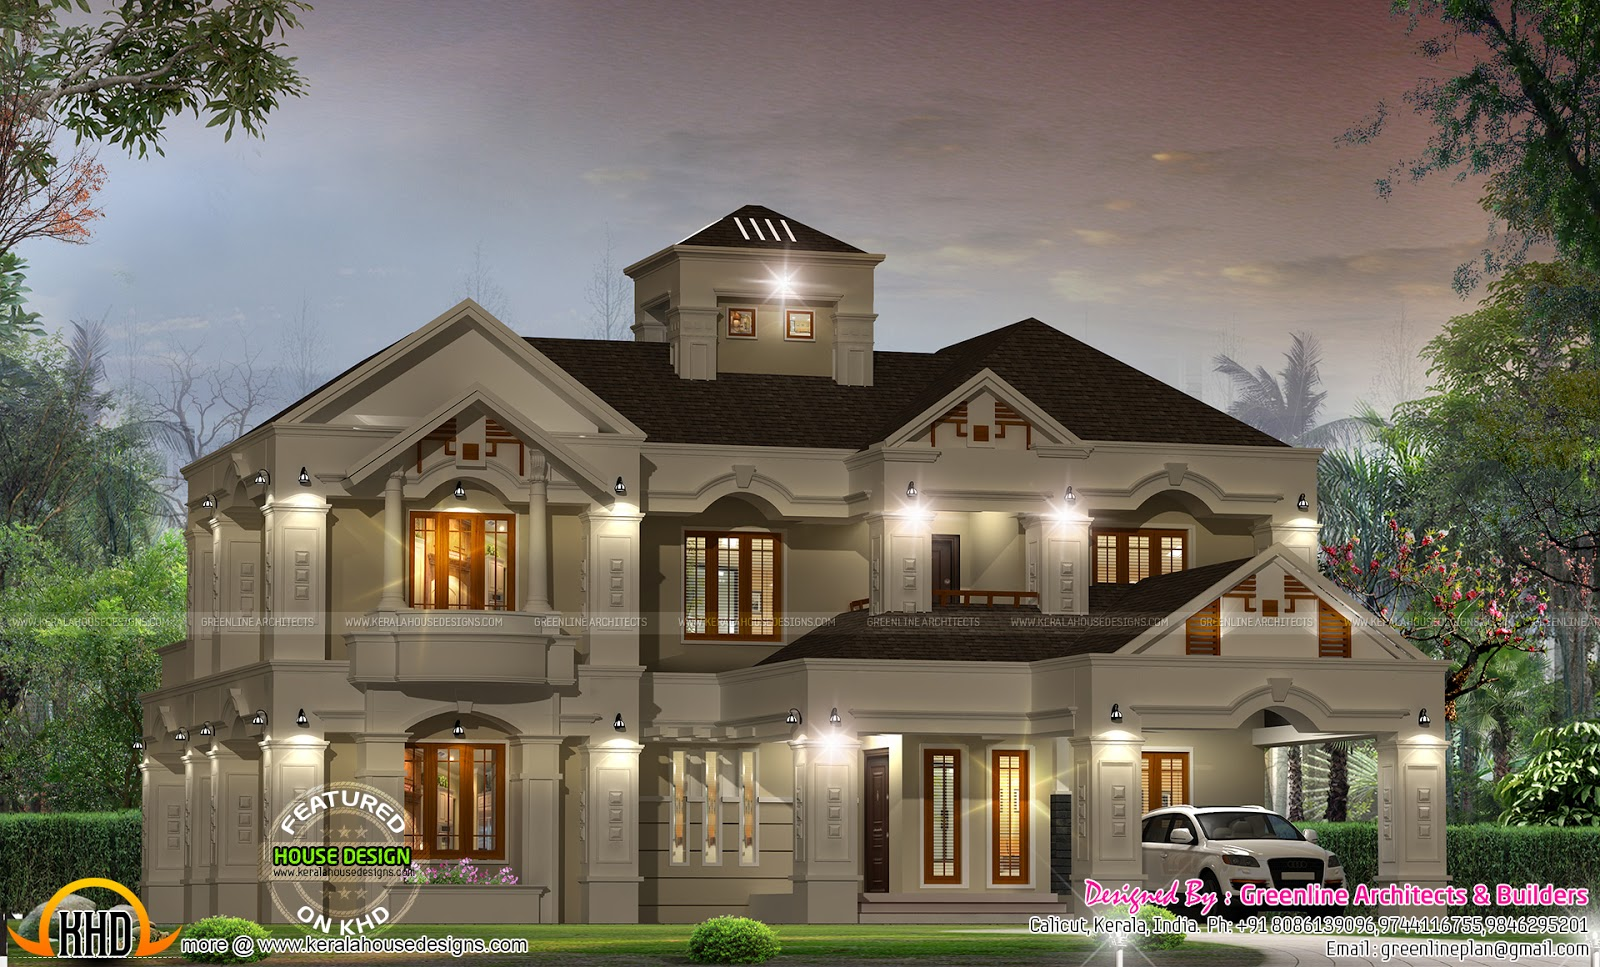 Luxury villa design in kerala kerala home design and for Colonial style house plans kerala